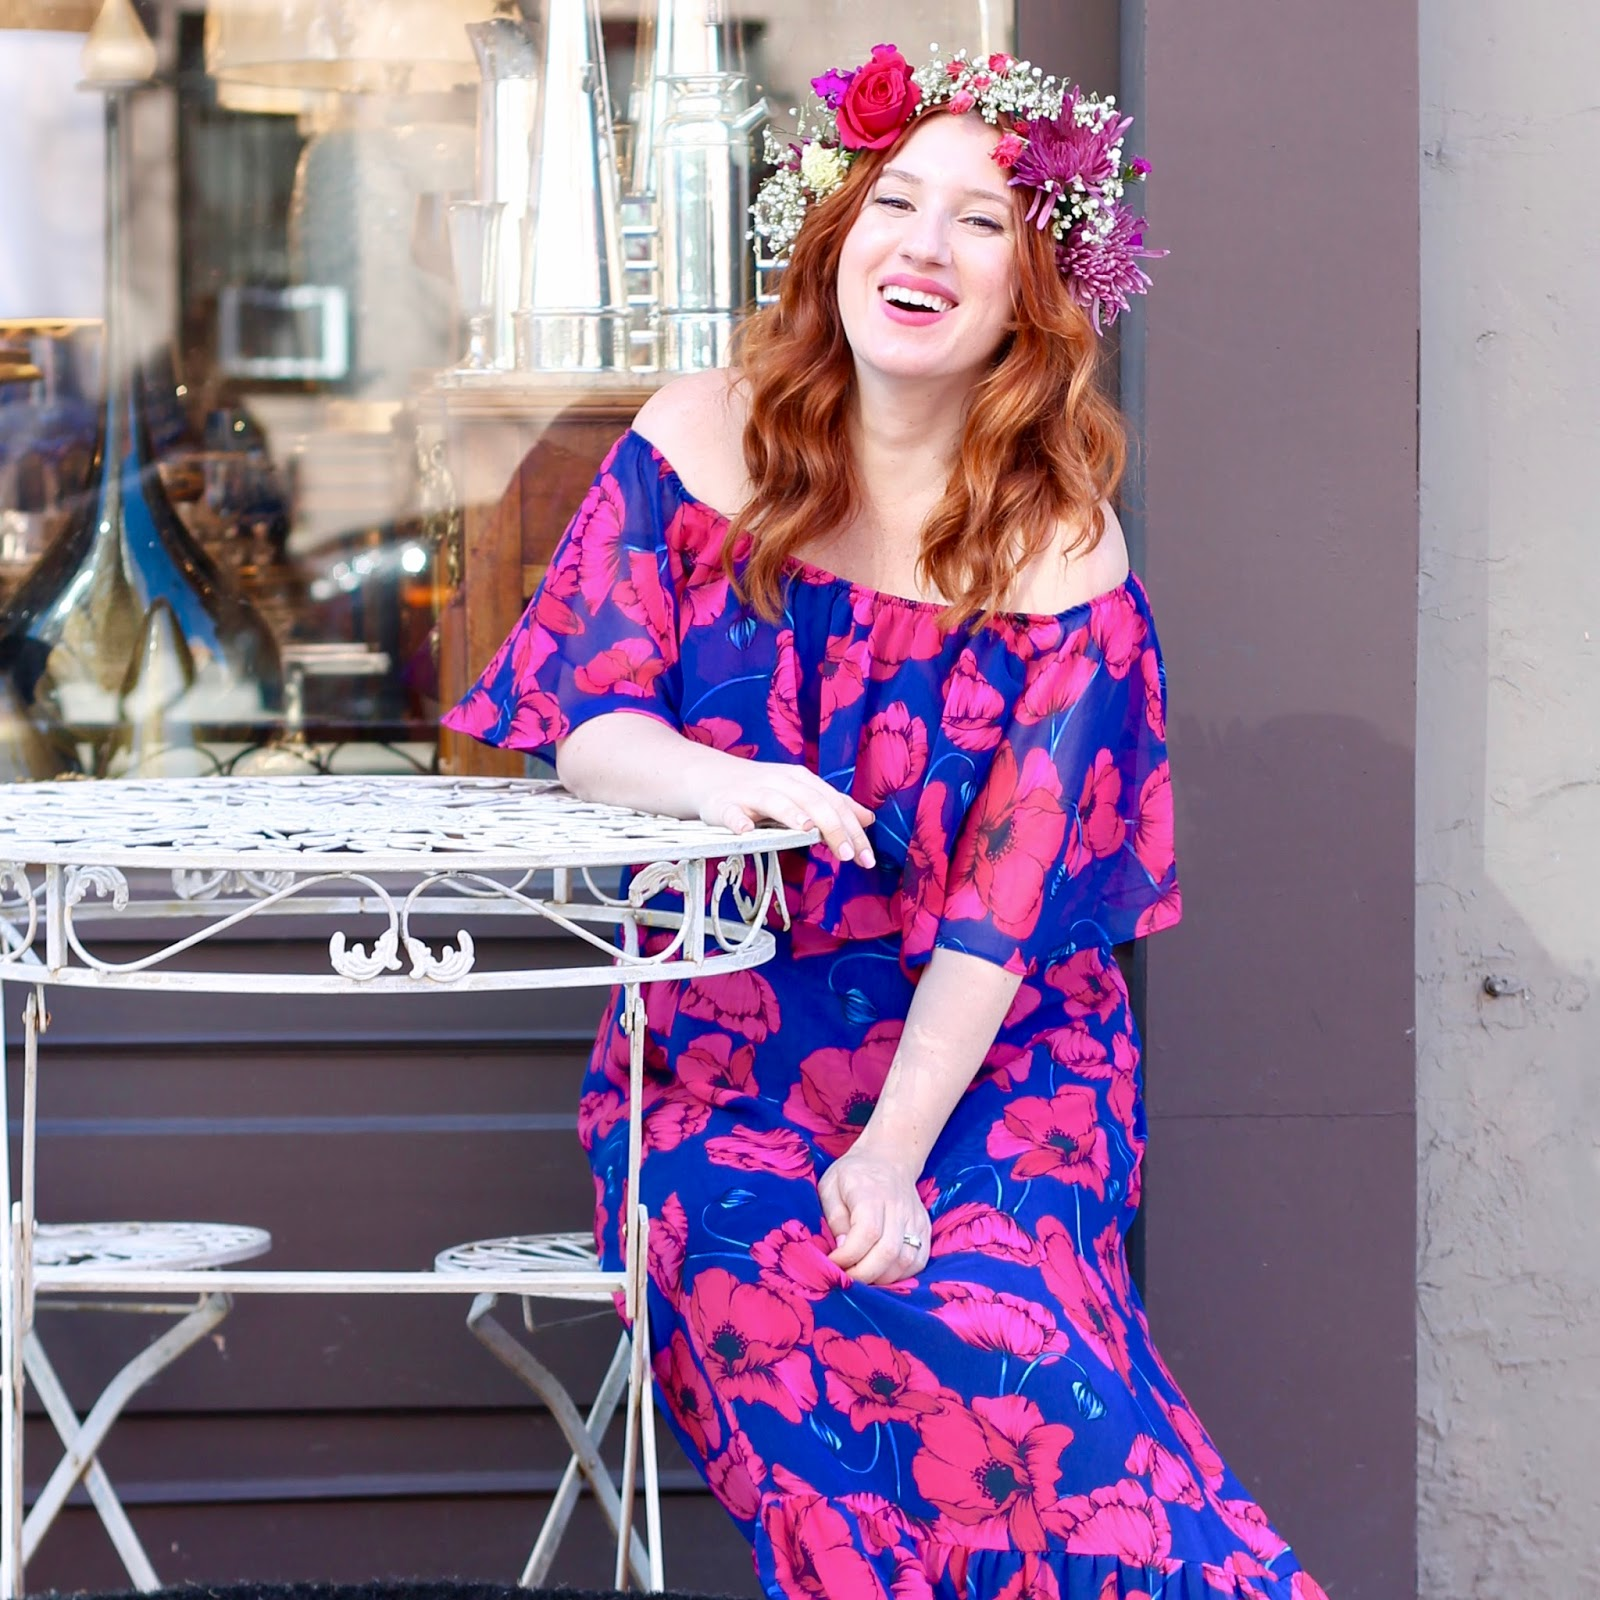 Baby Shower Style Flower Crown and Maxi Dress